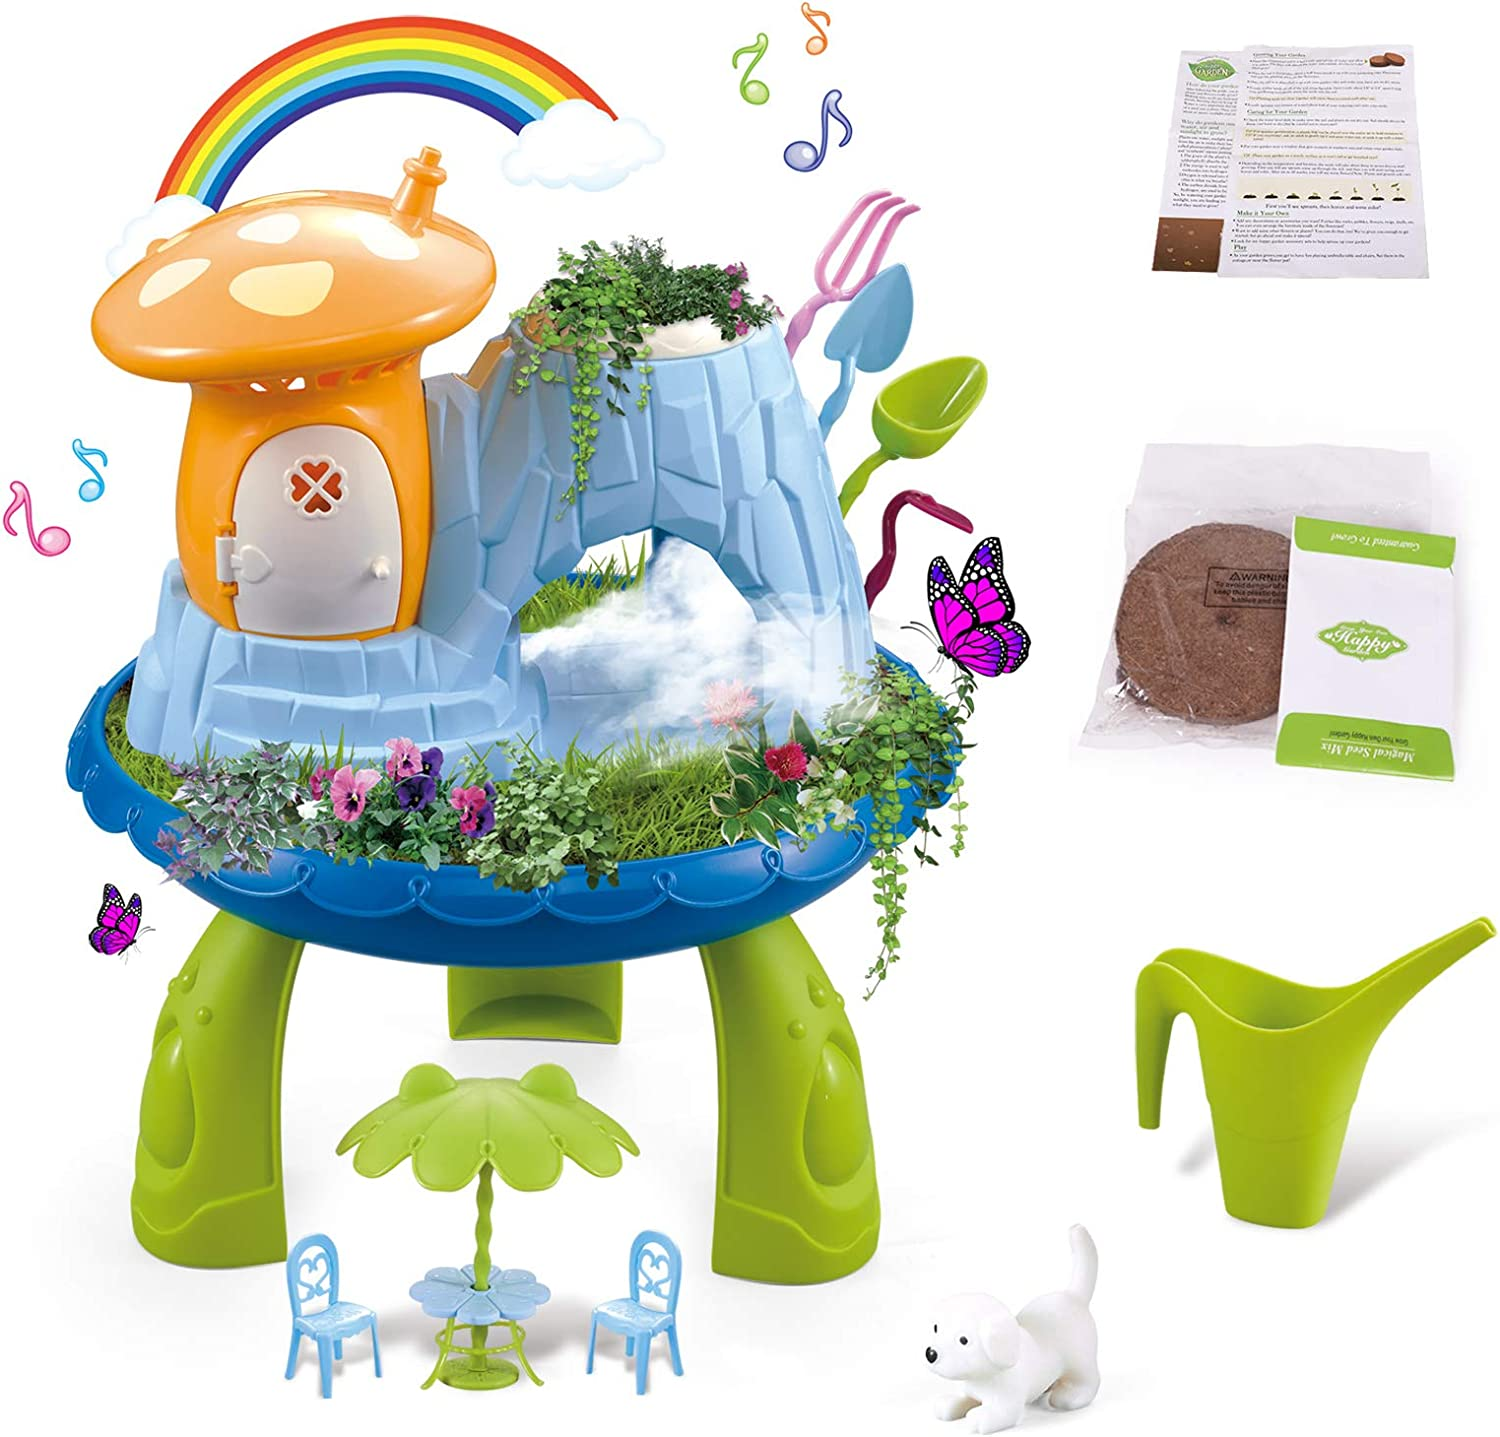 Fairy Garden Kits Kids Gardening Set Boys Indoor Outdoor DIY Play Activity Gardening Tool Set Toys with Music & Cool Mist Spraying & Seeds & Tool for Toddlers Ages 3 up Festival Birthday Learning Gift